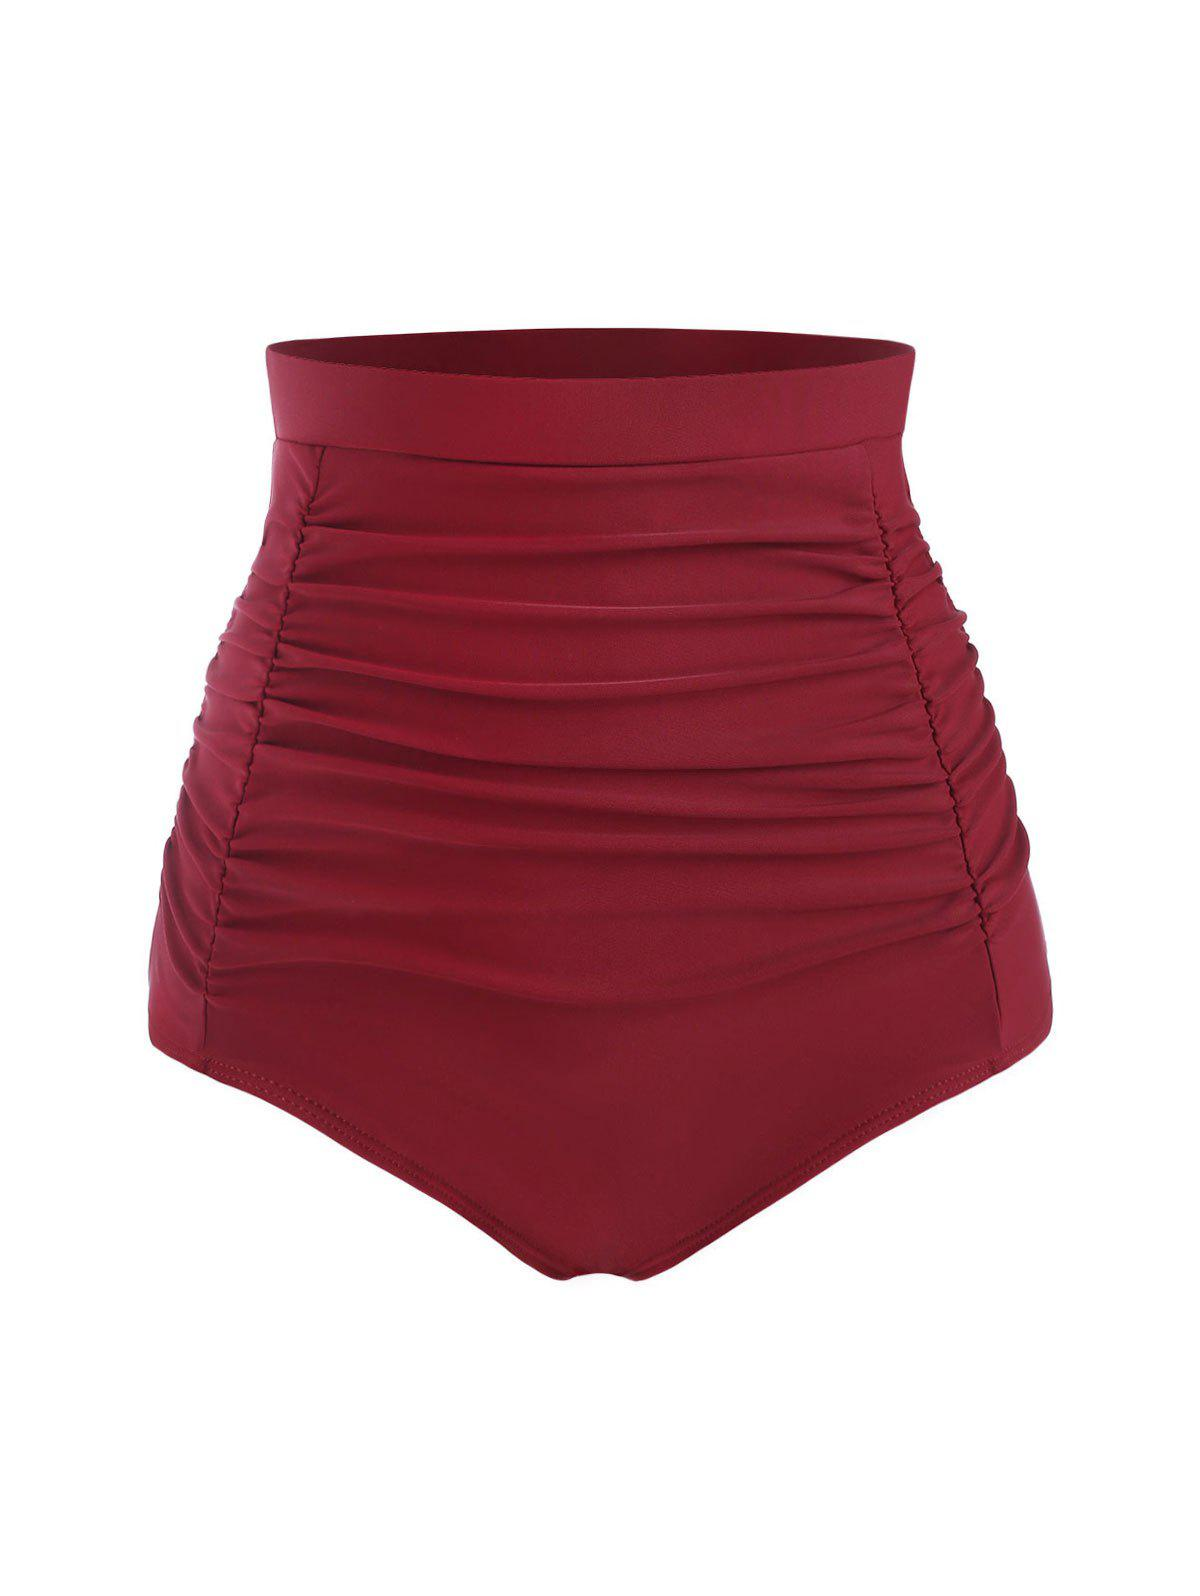 Ruched High Rise Bikini Bottom - DEEP RED M